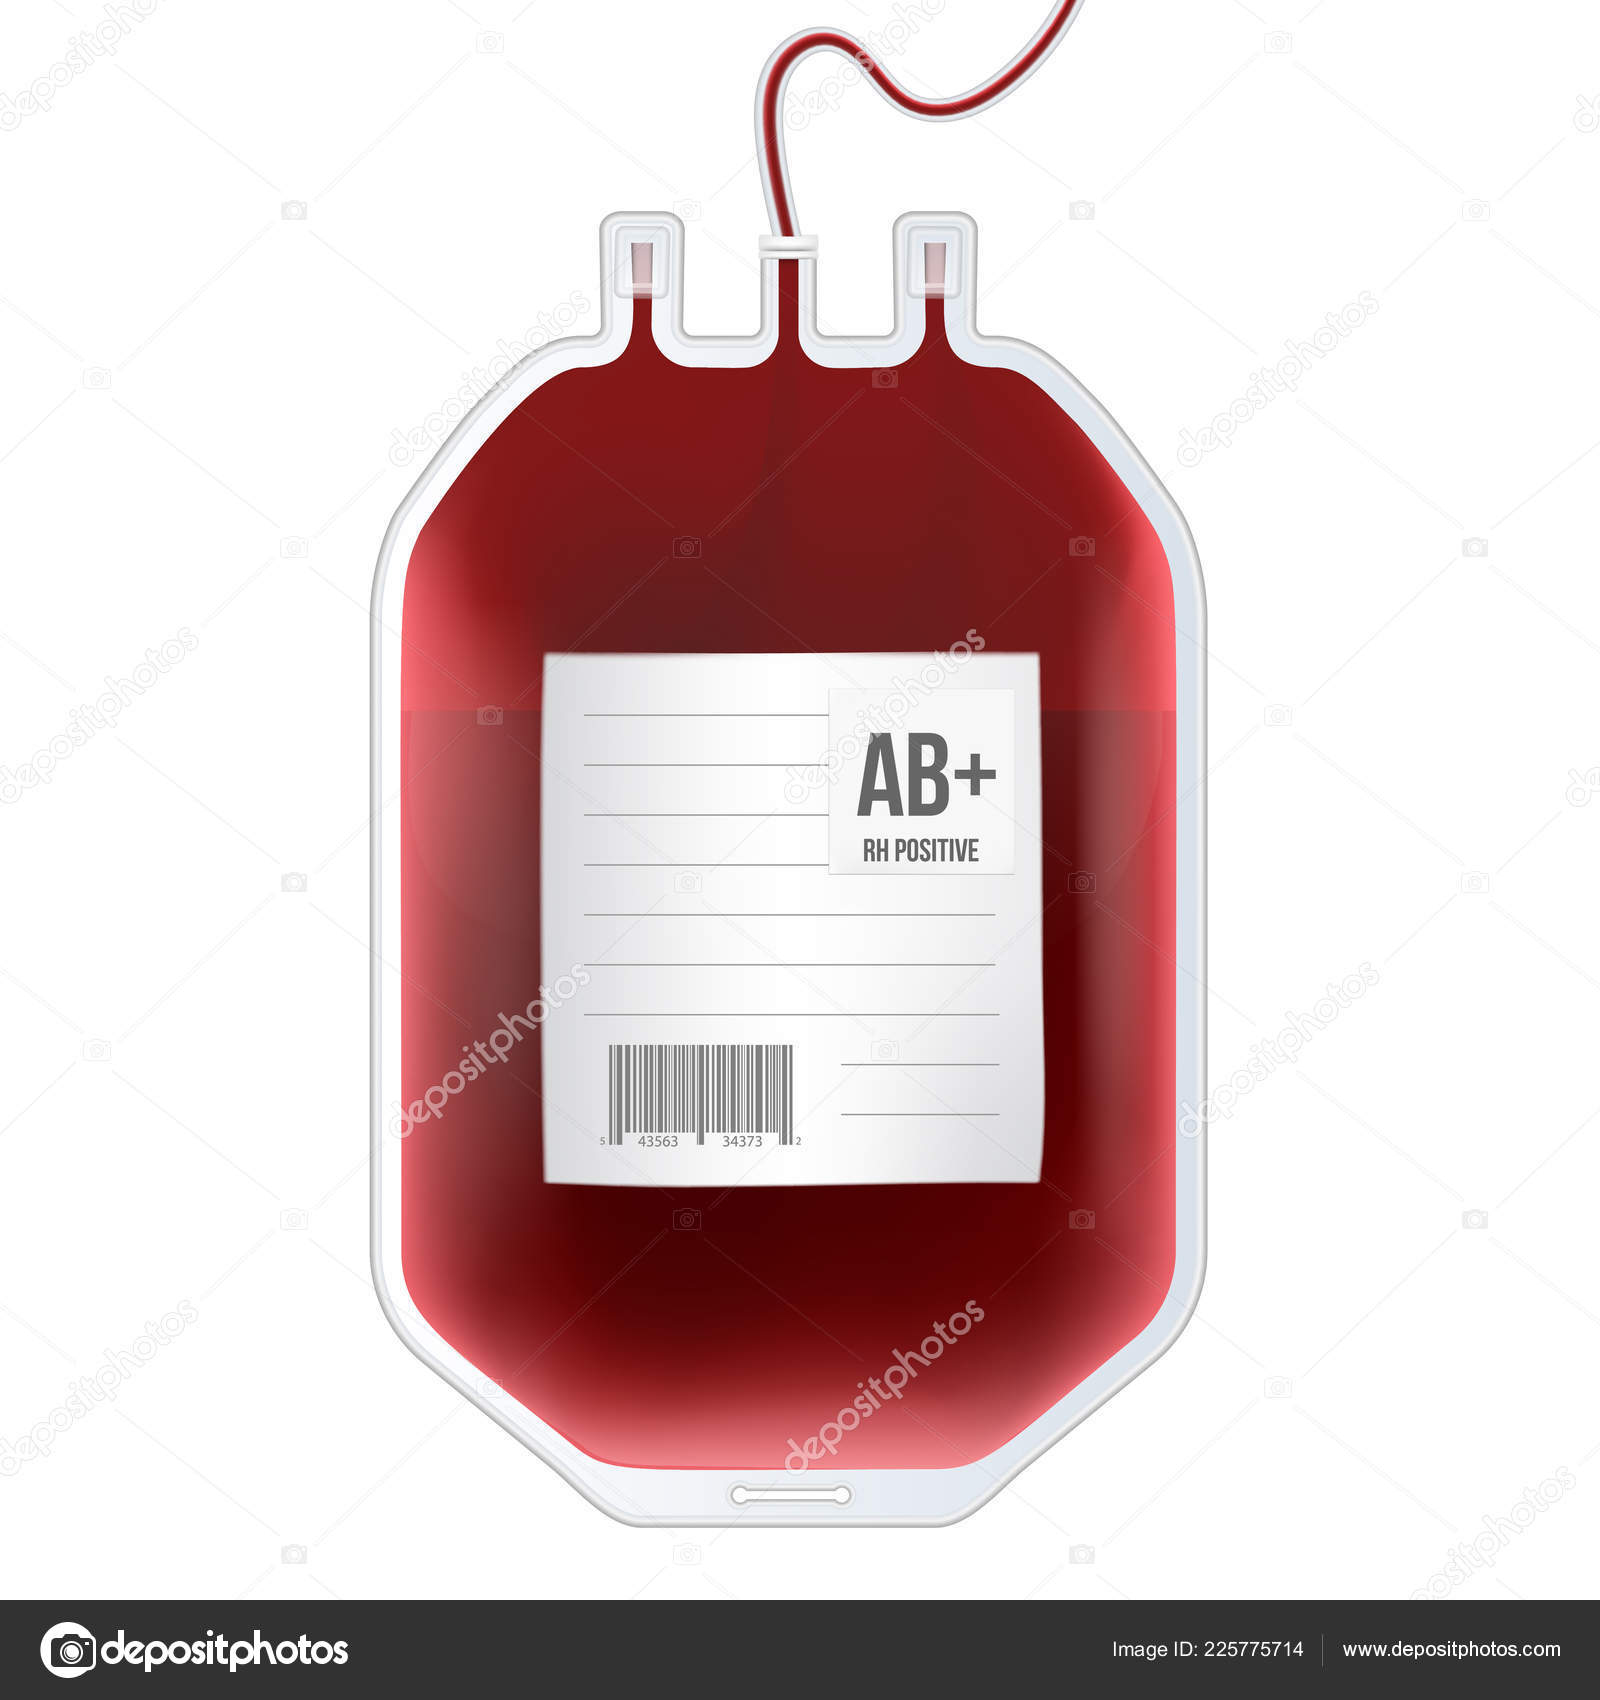 Blood group images, stock photos & vectors | shutterstock.